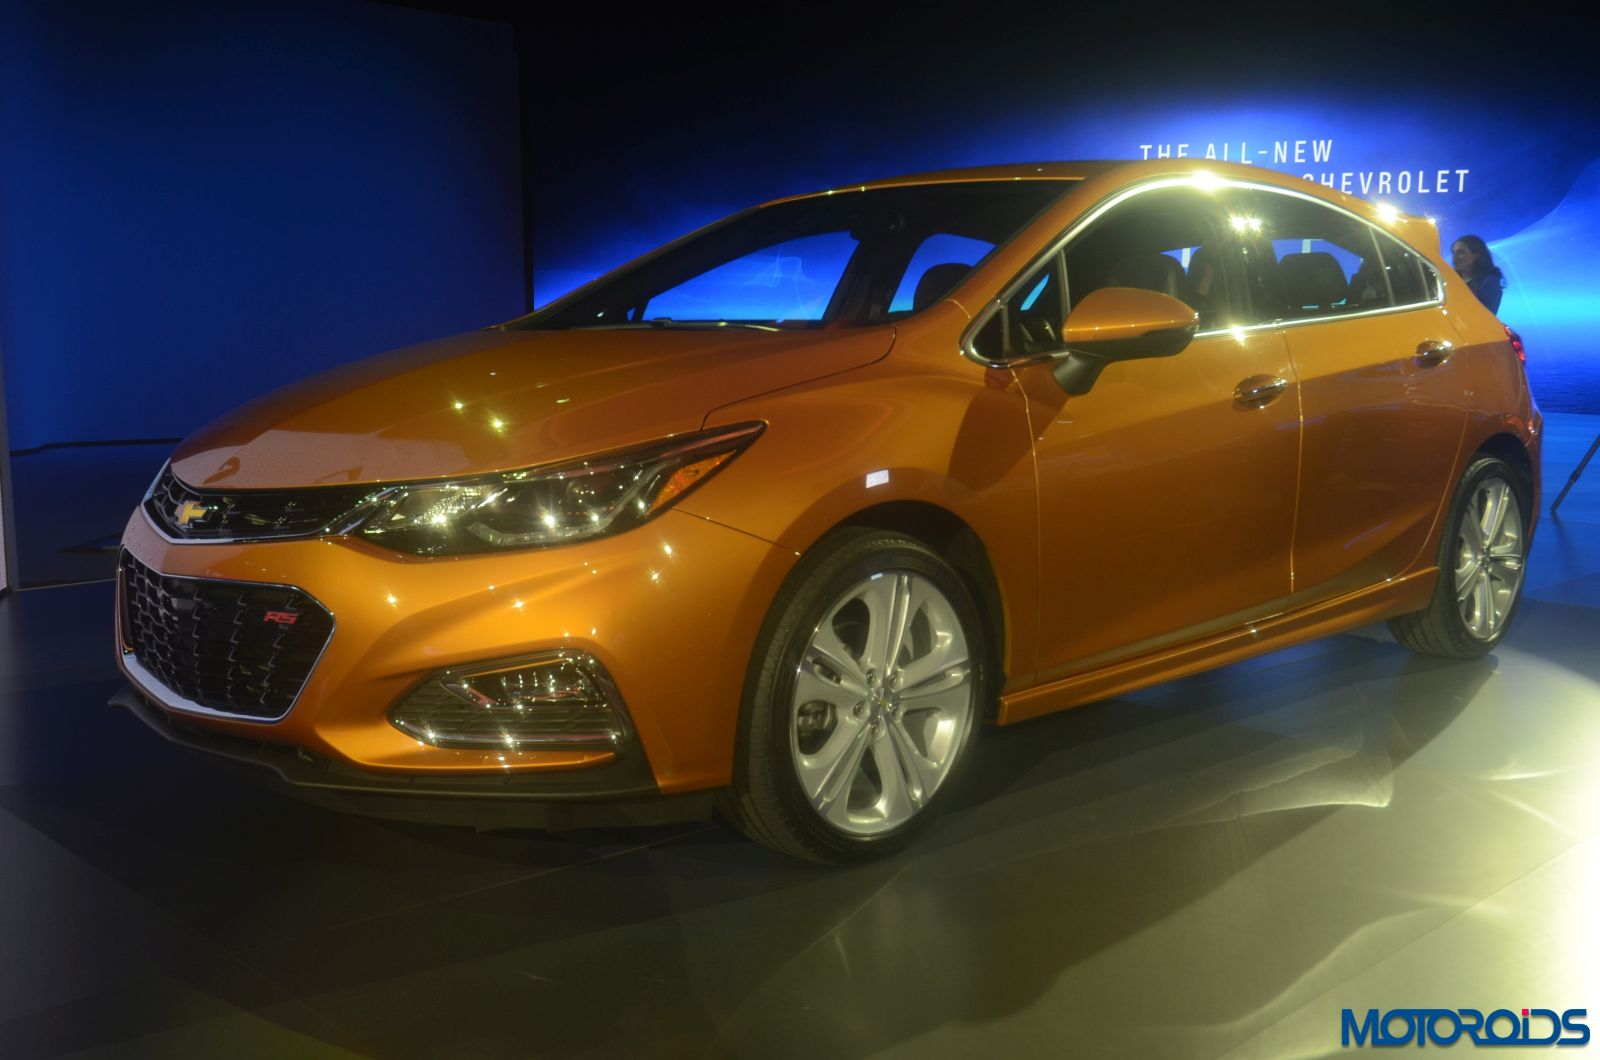 2017 Chevrolet Cruze Hatchback side profile 2